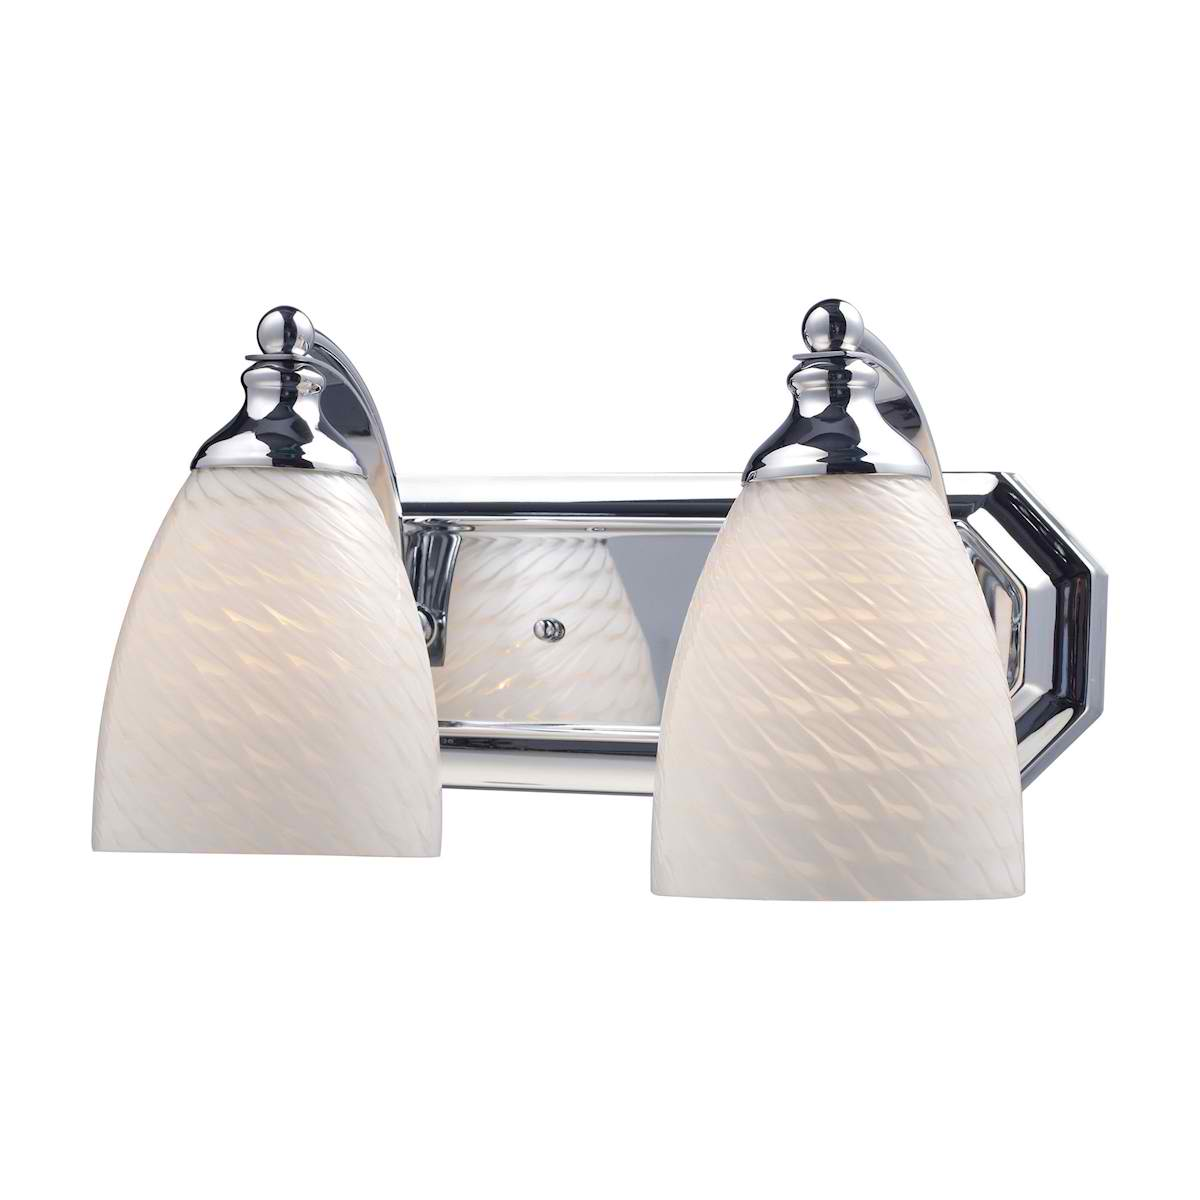 Vanity 2-Light Chrome Complete with Swirl Glass